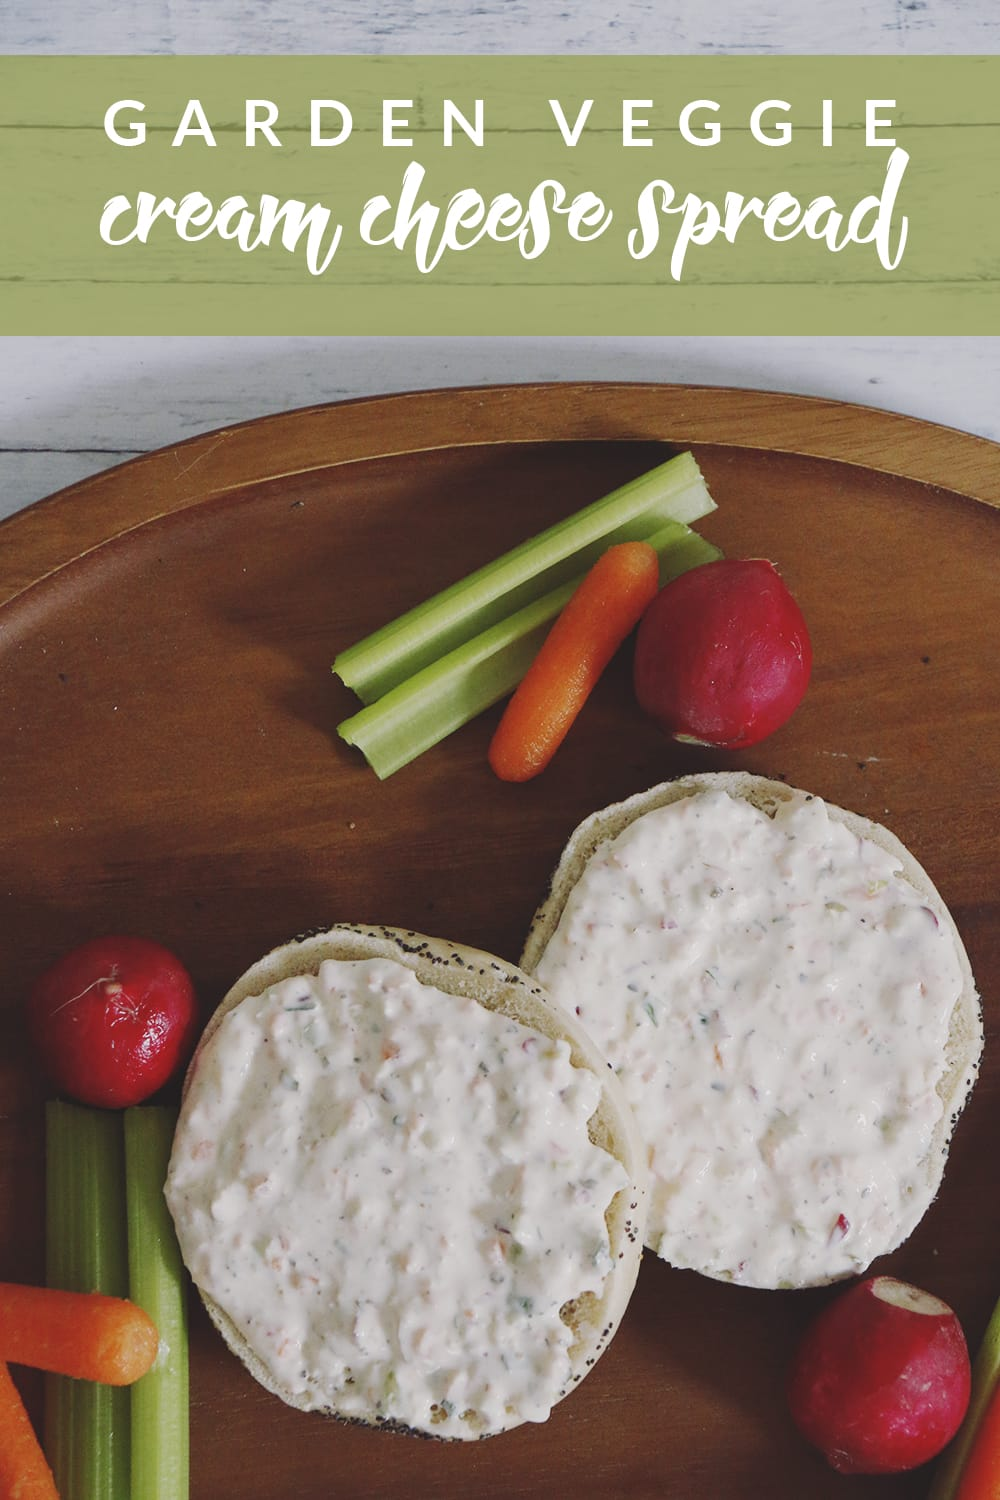 This garden veggie cream cheese recipe is a great way to use your garden vegetables! Use it as dip or spread it on a bagel for a veggie-packed smear!